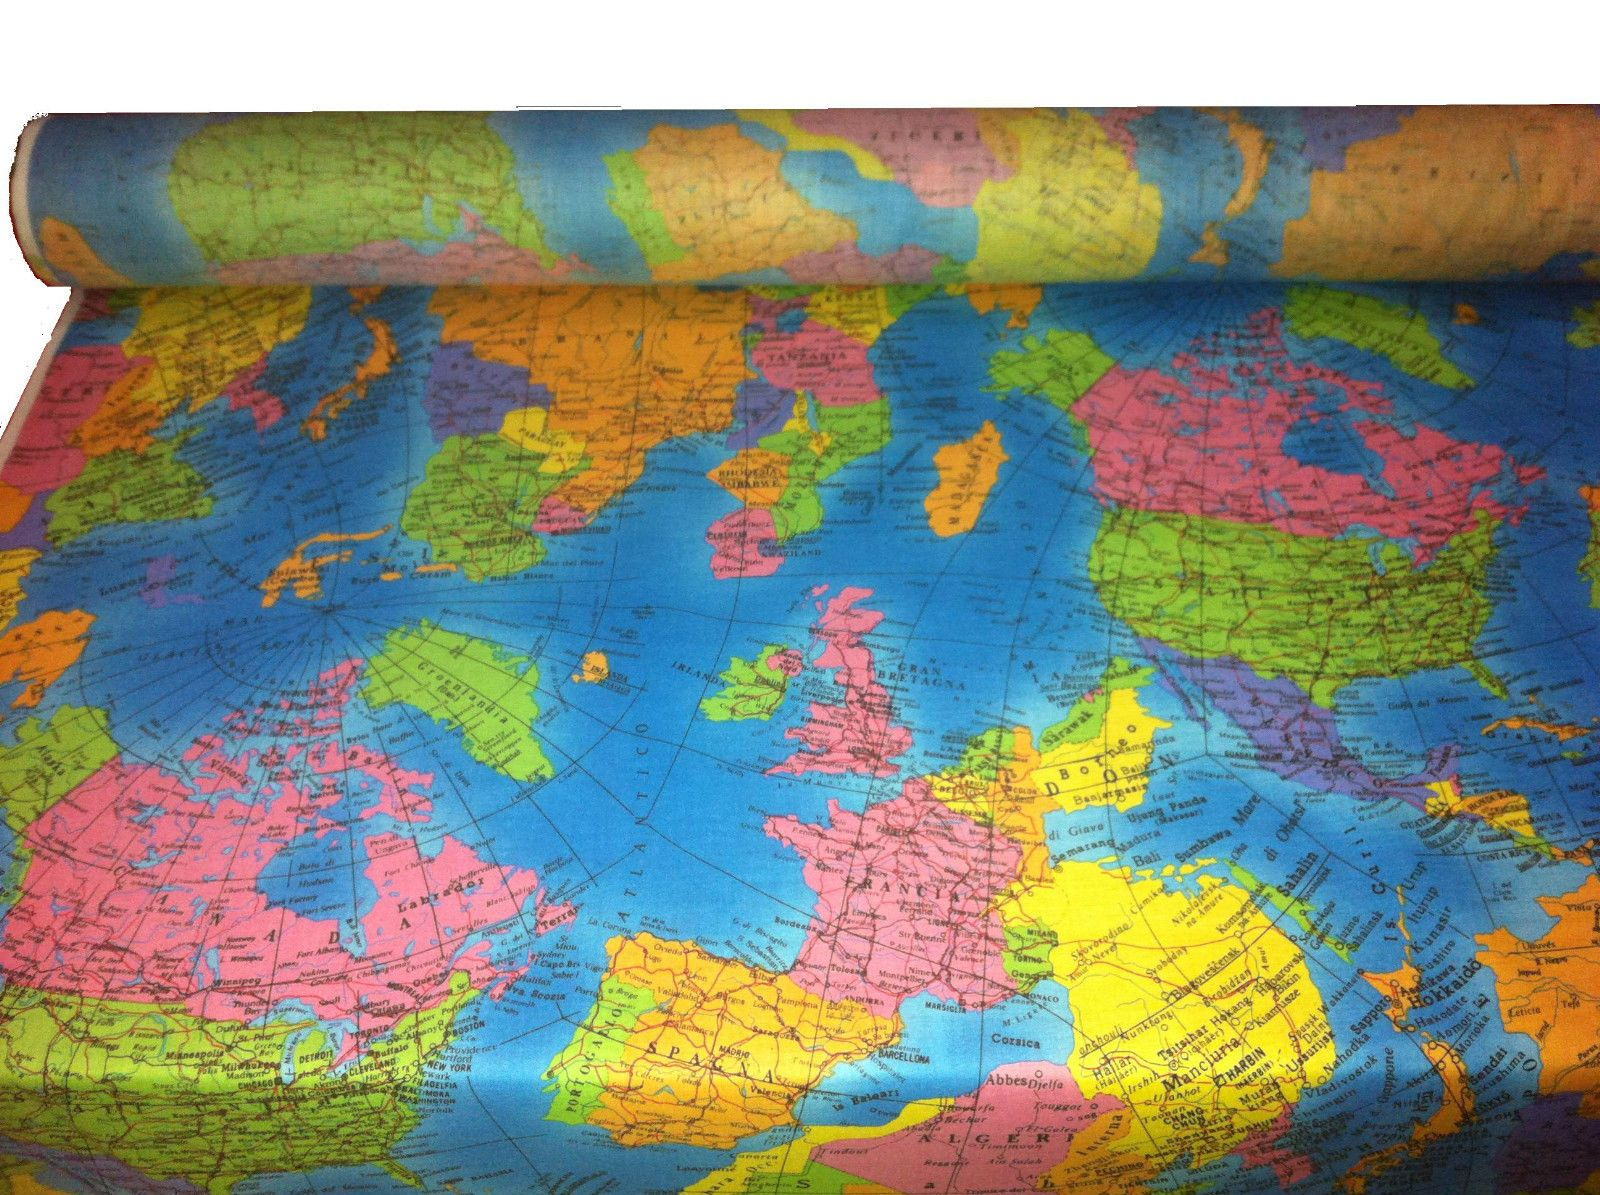 Globe world map cotton poplin fabric atlas material 53 wide globe world map cotton poplin fabric atlas material 53 wide turquoise blue gumiabroncs Image collections